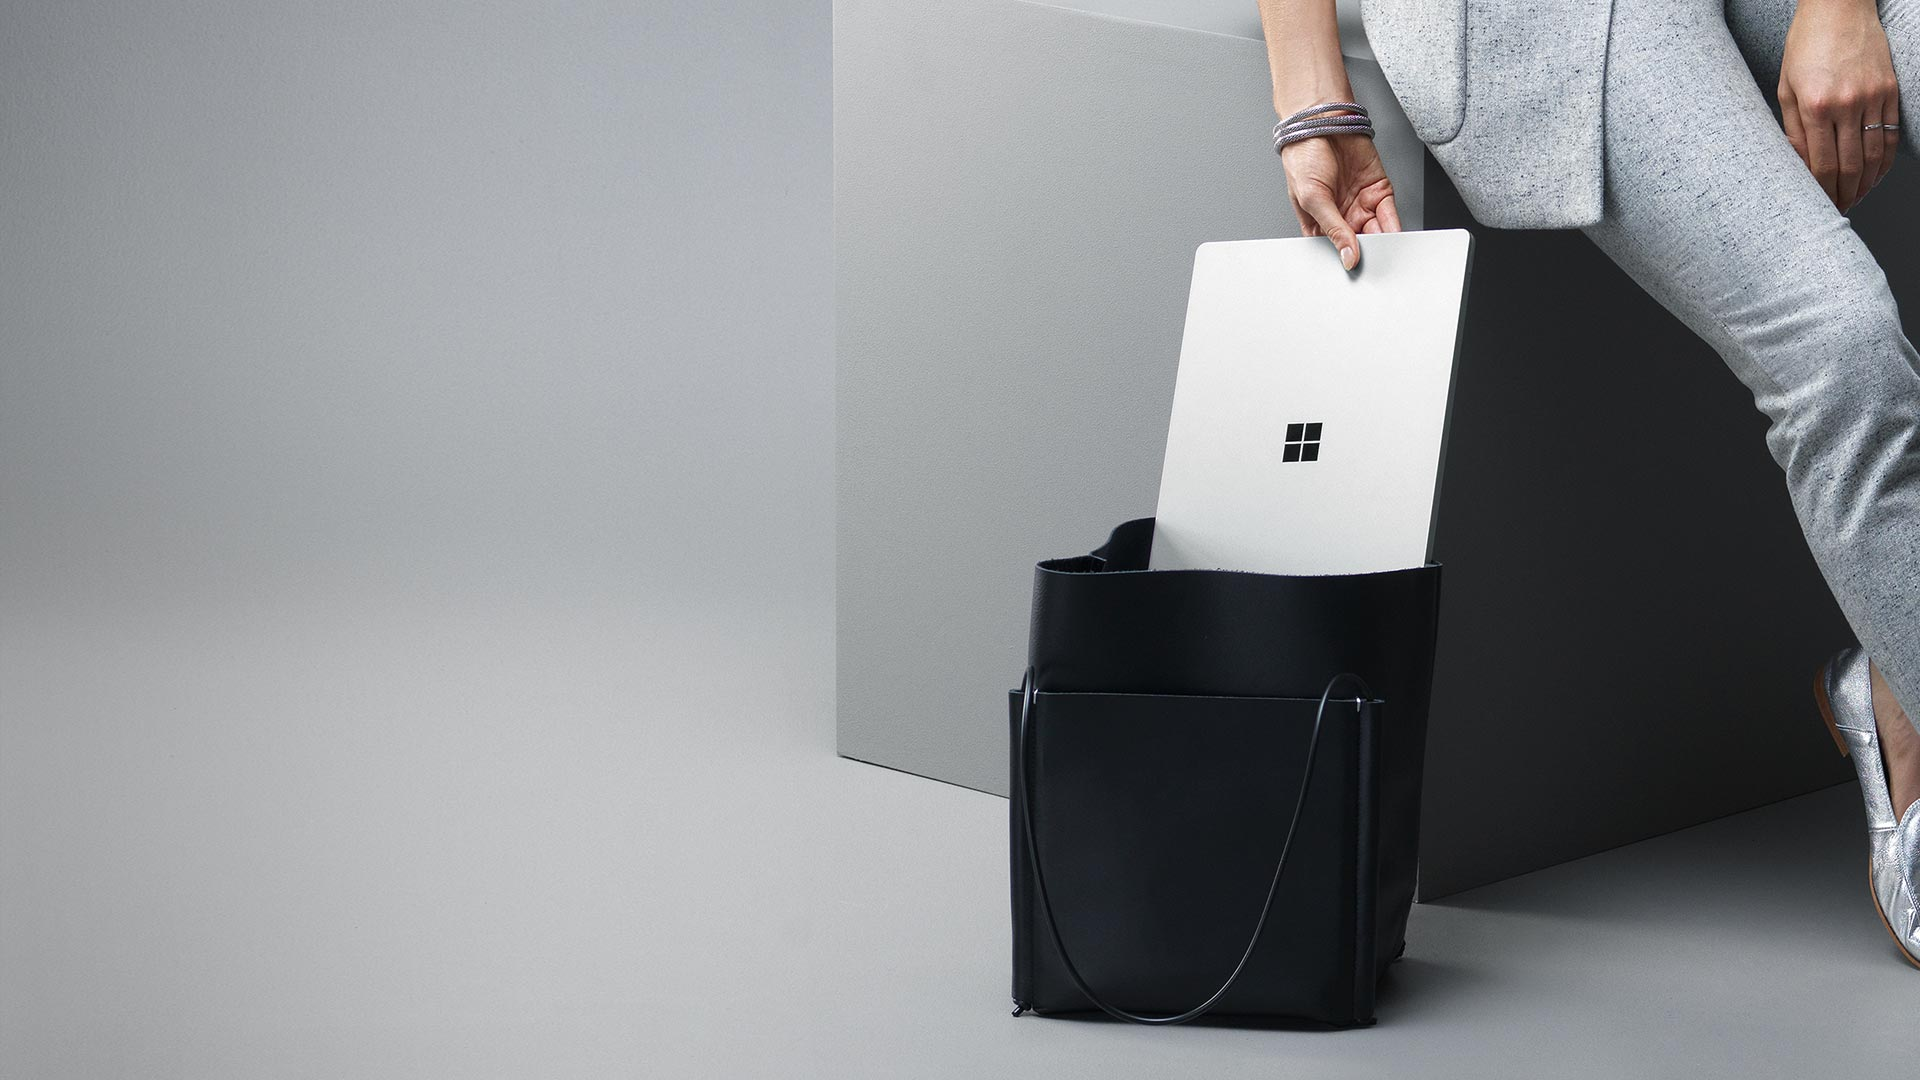 Fashionable woman placing the platinum Surface Laptop in her bag.